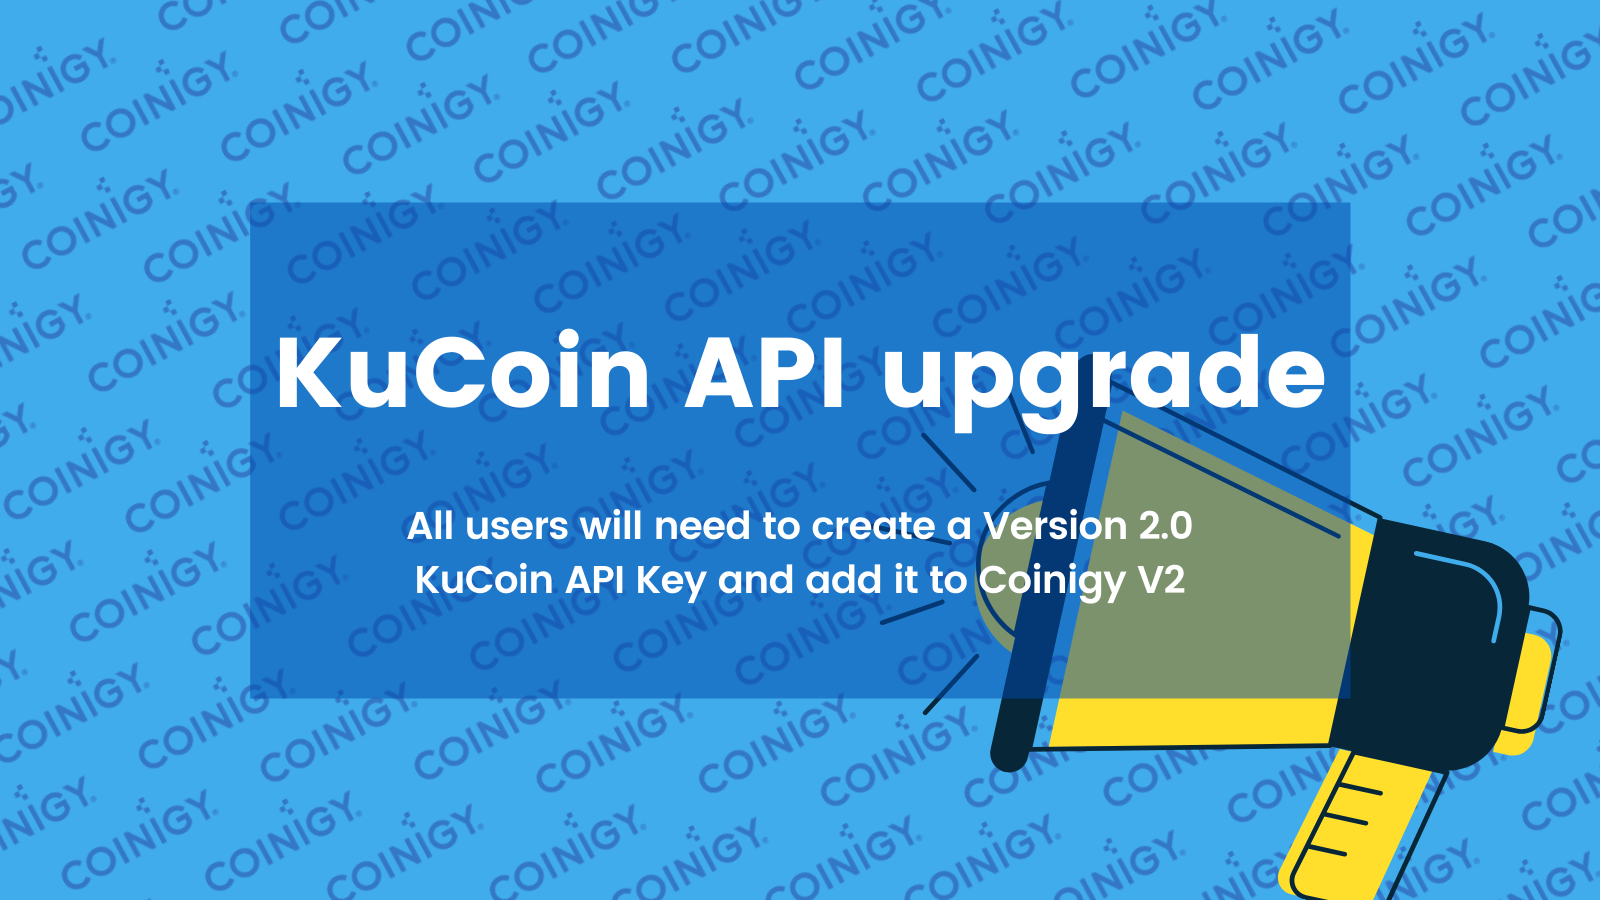 KuCoin API upgrade - Users will need to create a Version 2.0 API and add to Coinigy V2